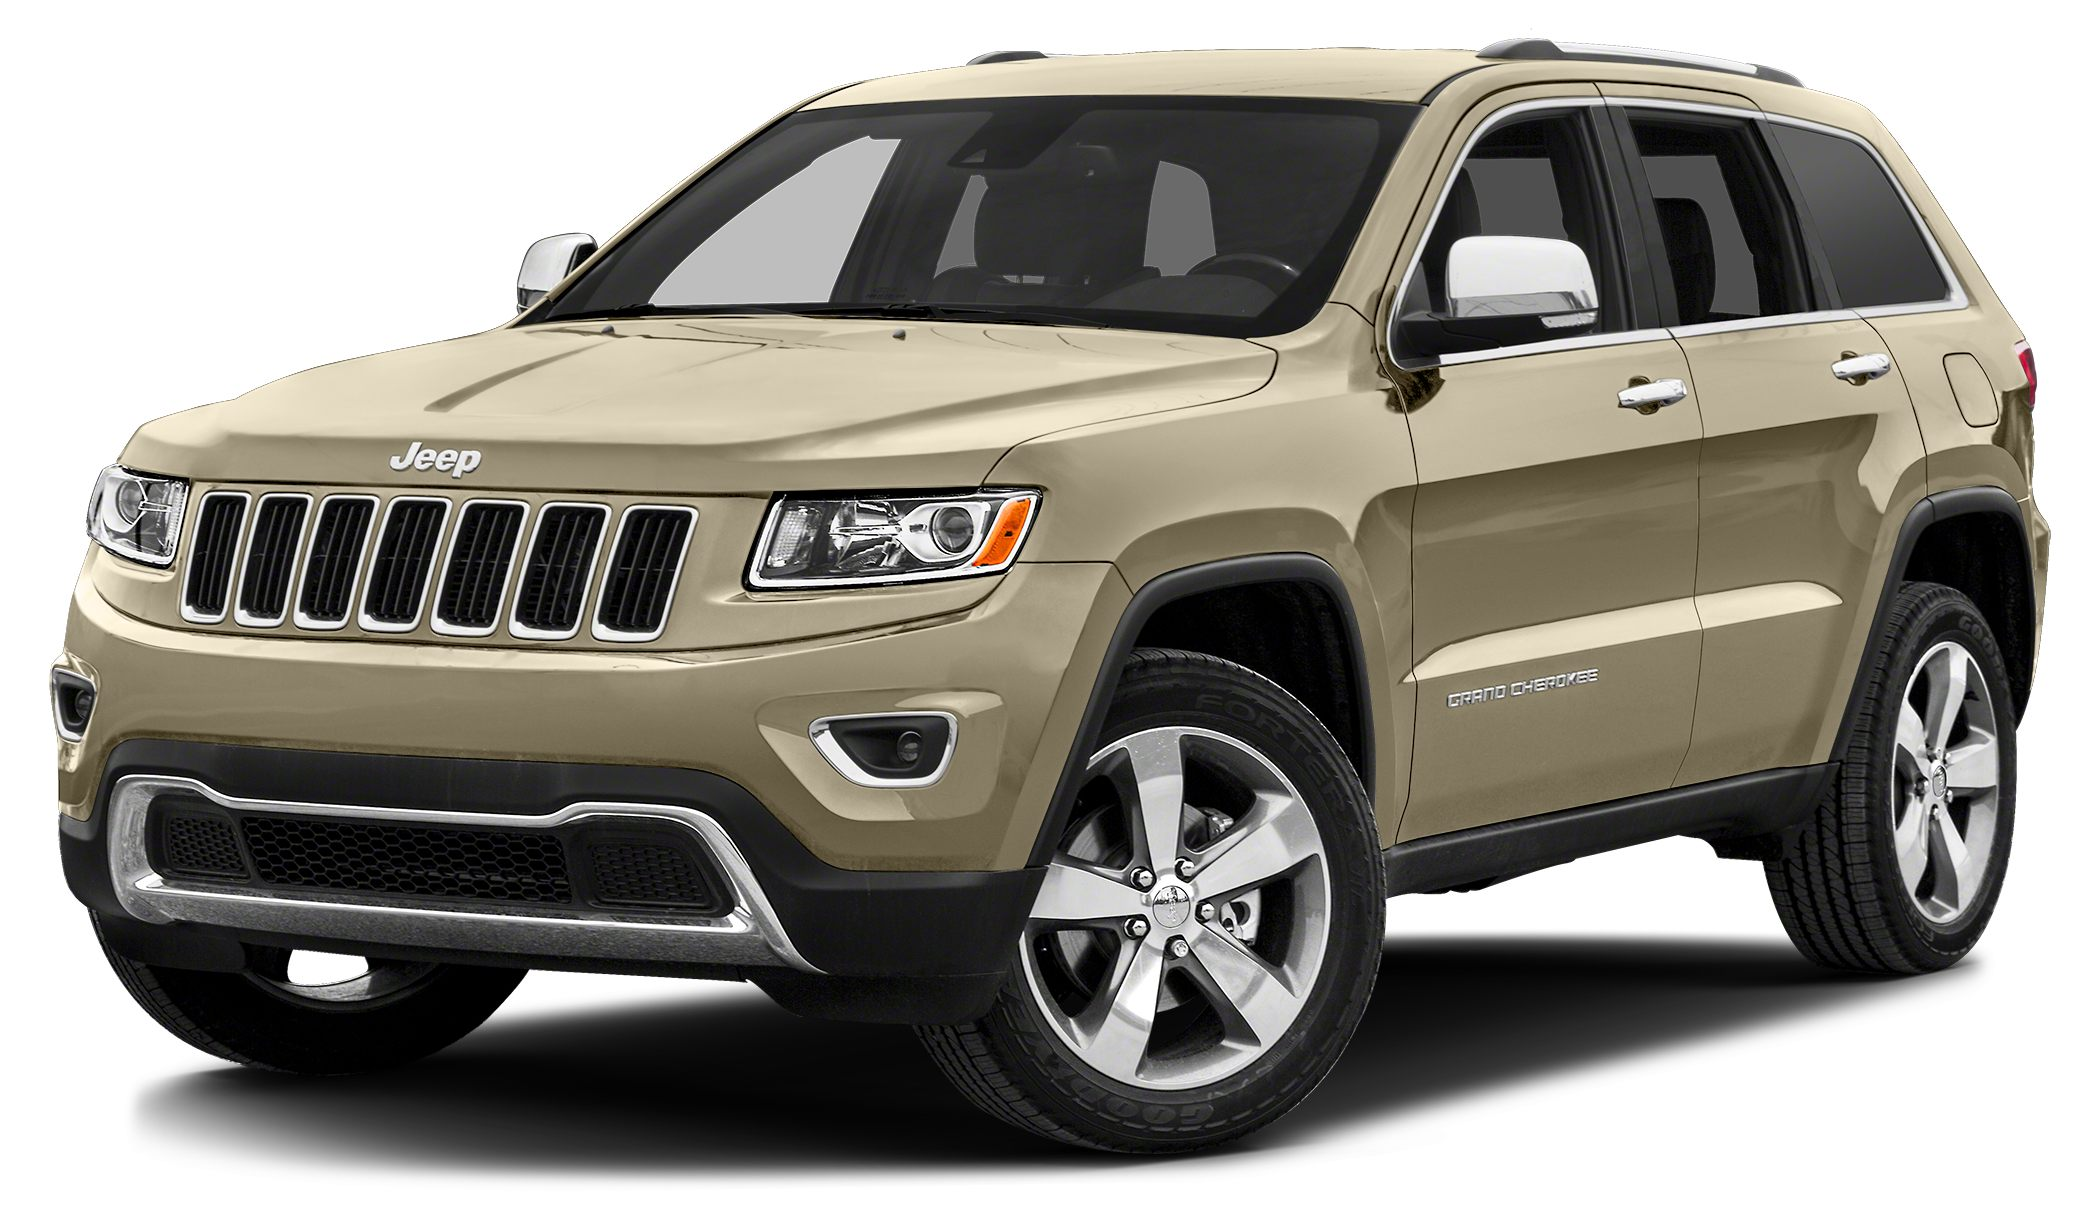 2015 Jeep Grand Cherokee Limited Recent Arrival 4WD Odometer is 1195 miles below market average